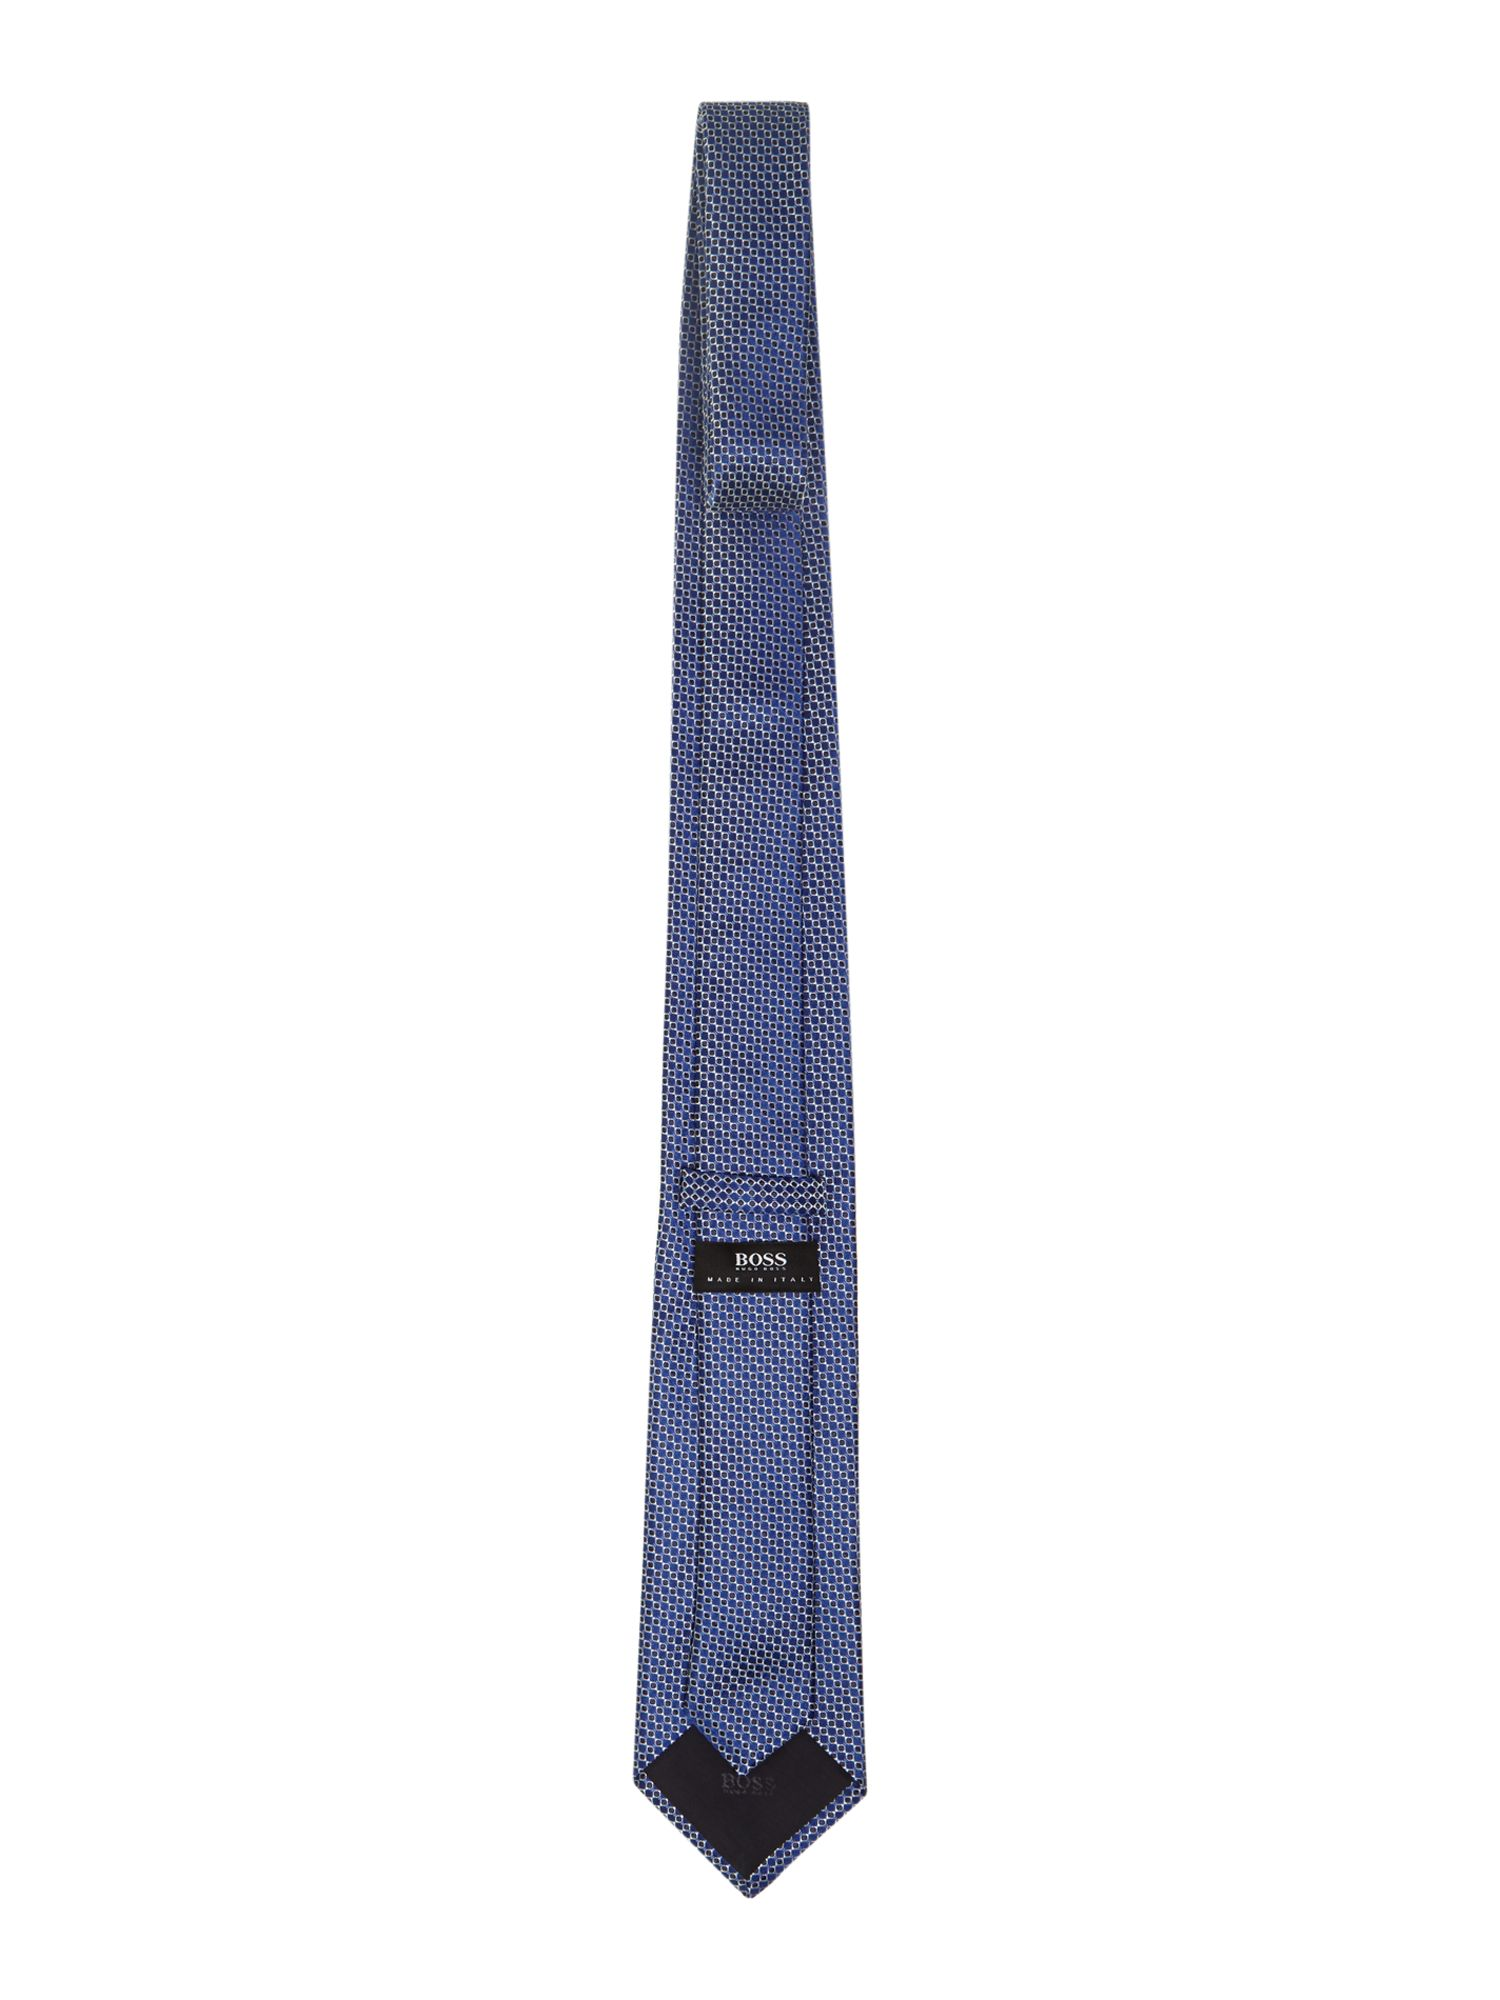 Square geometric slim tie